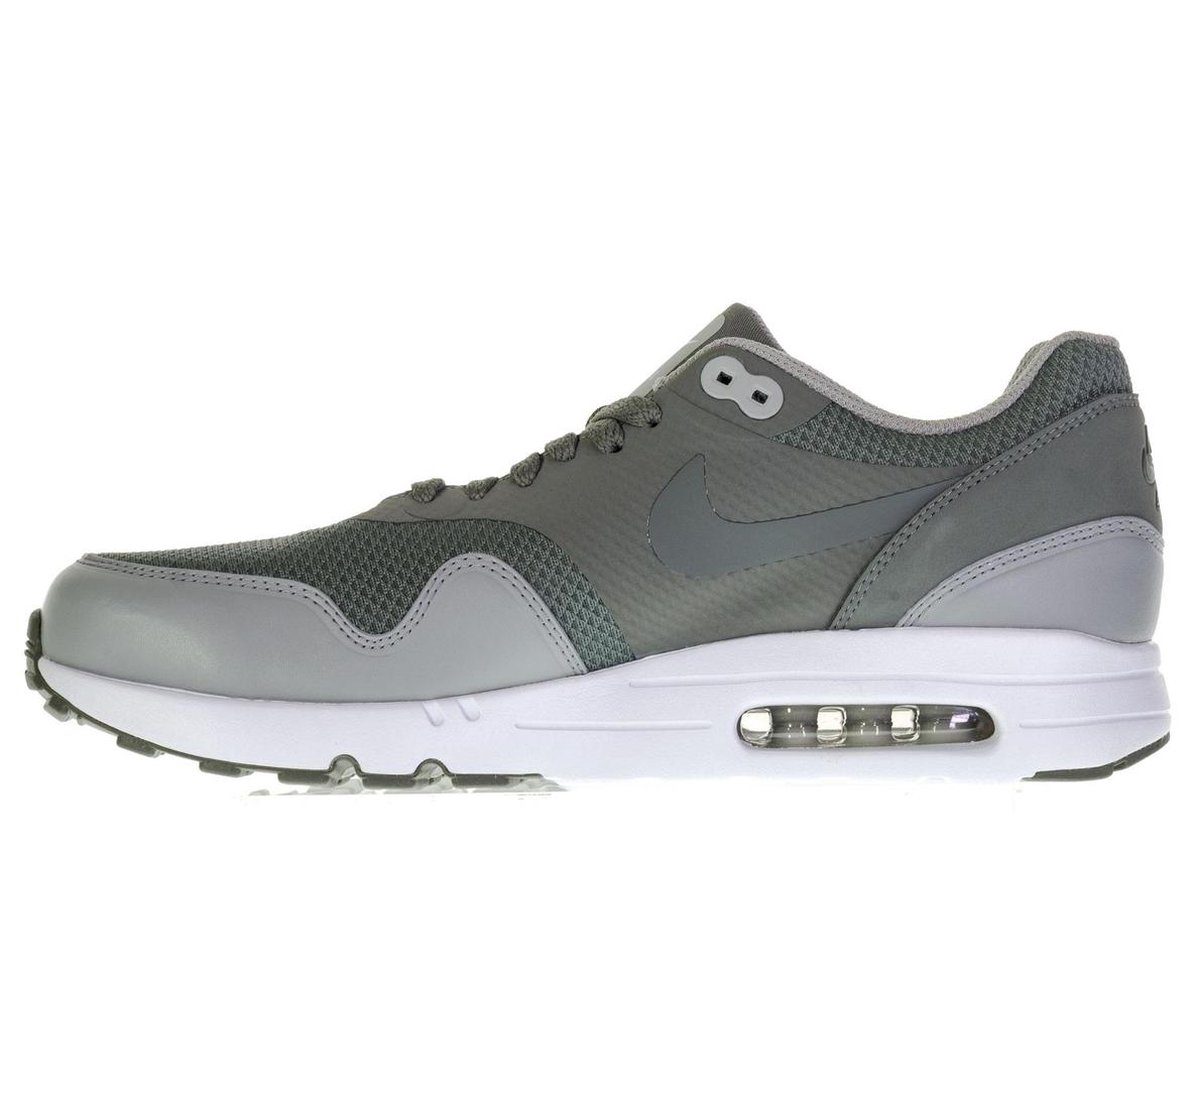 NIKE AIR MAX 1 ULTRA 2.0 ESSENTIAL BLACK voor €105,00